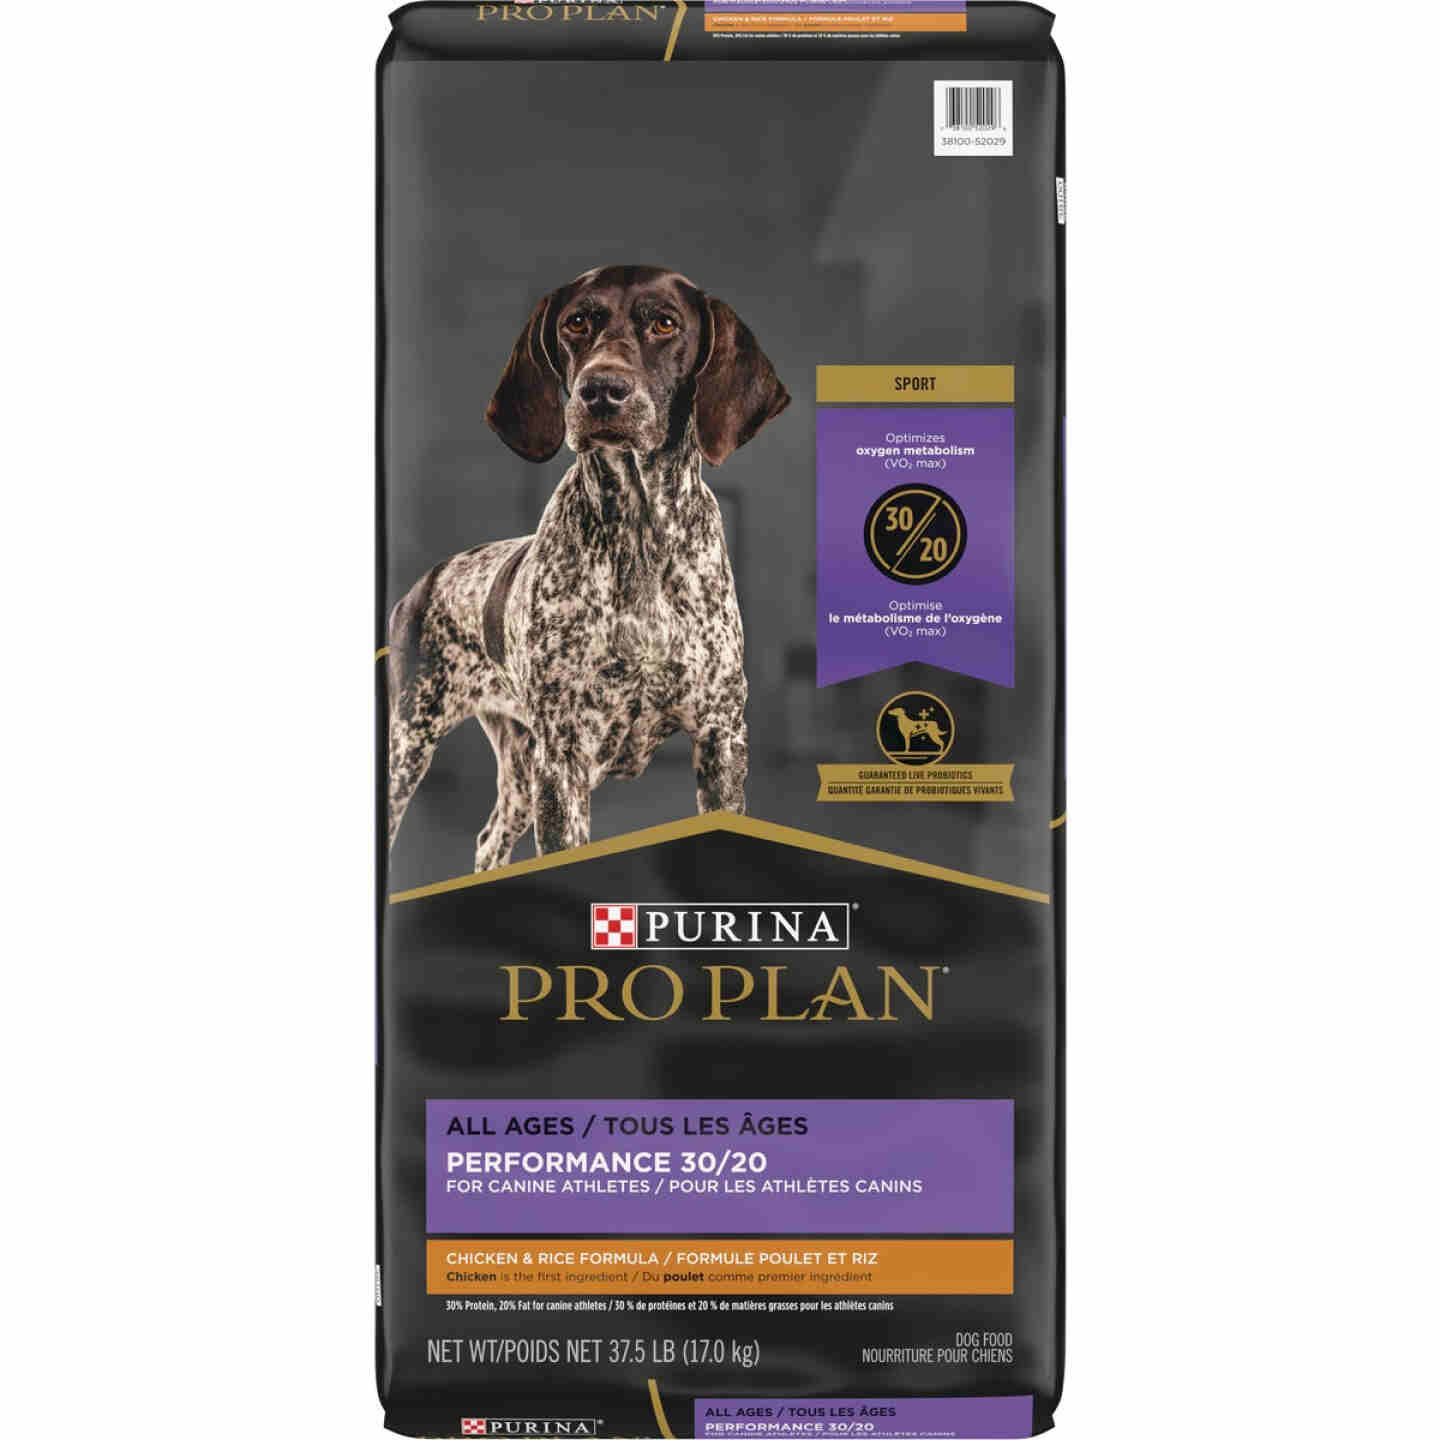 Purina Pro Plan Sport 37.5 Lb. Chicken Flavor All Ages Performance Dry Dog Food Image 1